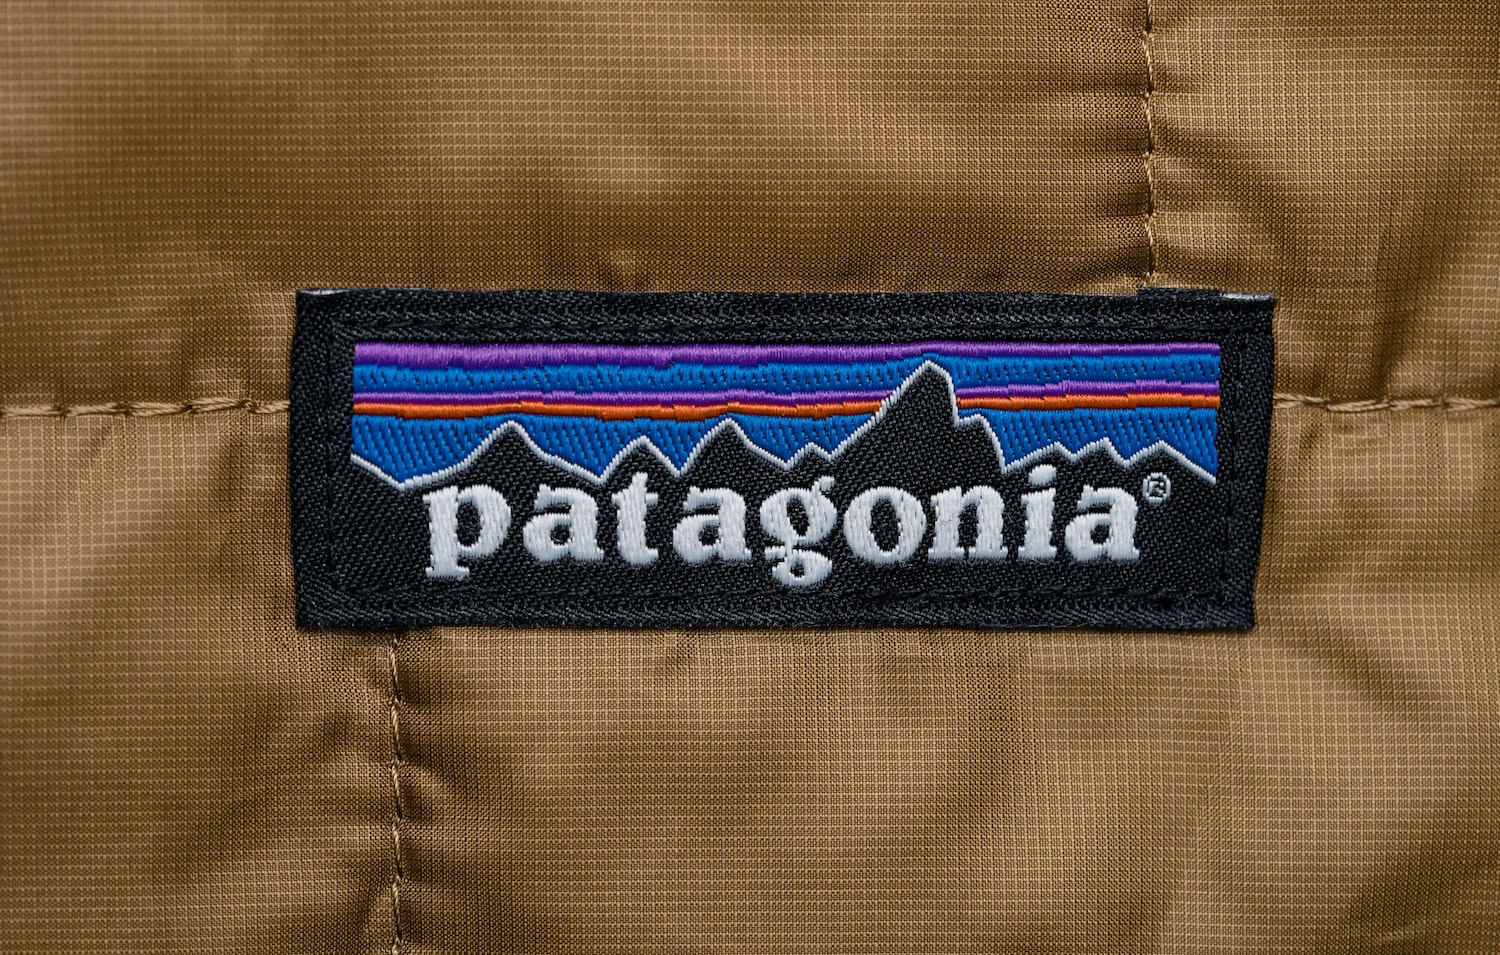 A brown jacket with a Patagornia logo embroidered on the front